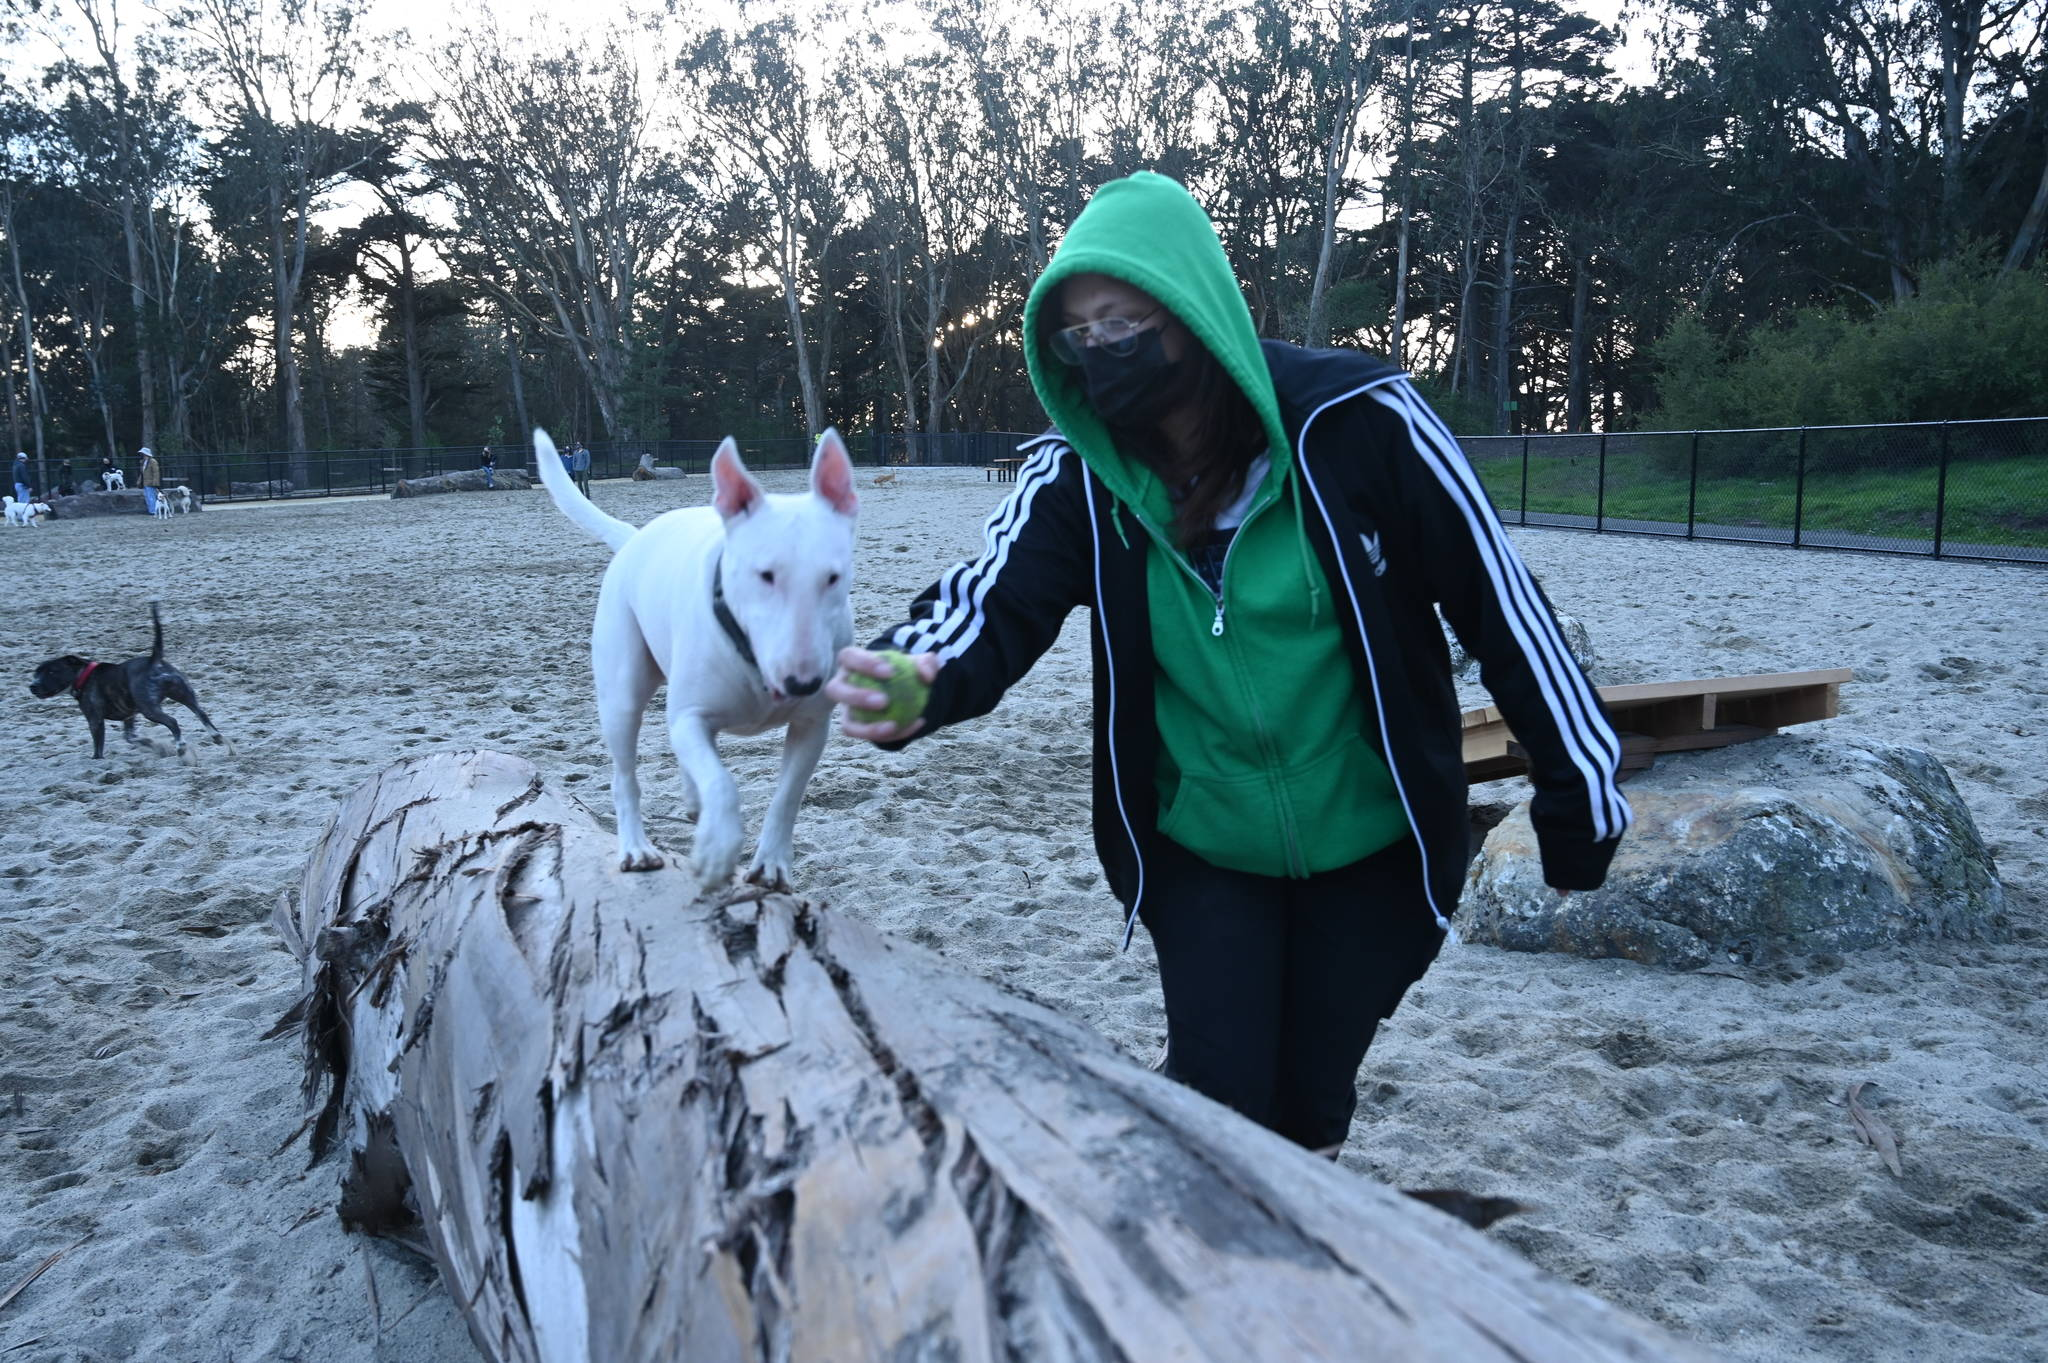 Delia A. and her dog, Dizzy, climb on trees installed in the renovated the Golden Gate Dog Training Area at Golden Gate Park. (Samantha Laurey/Special to SF Examiner)